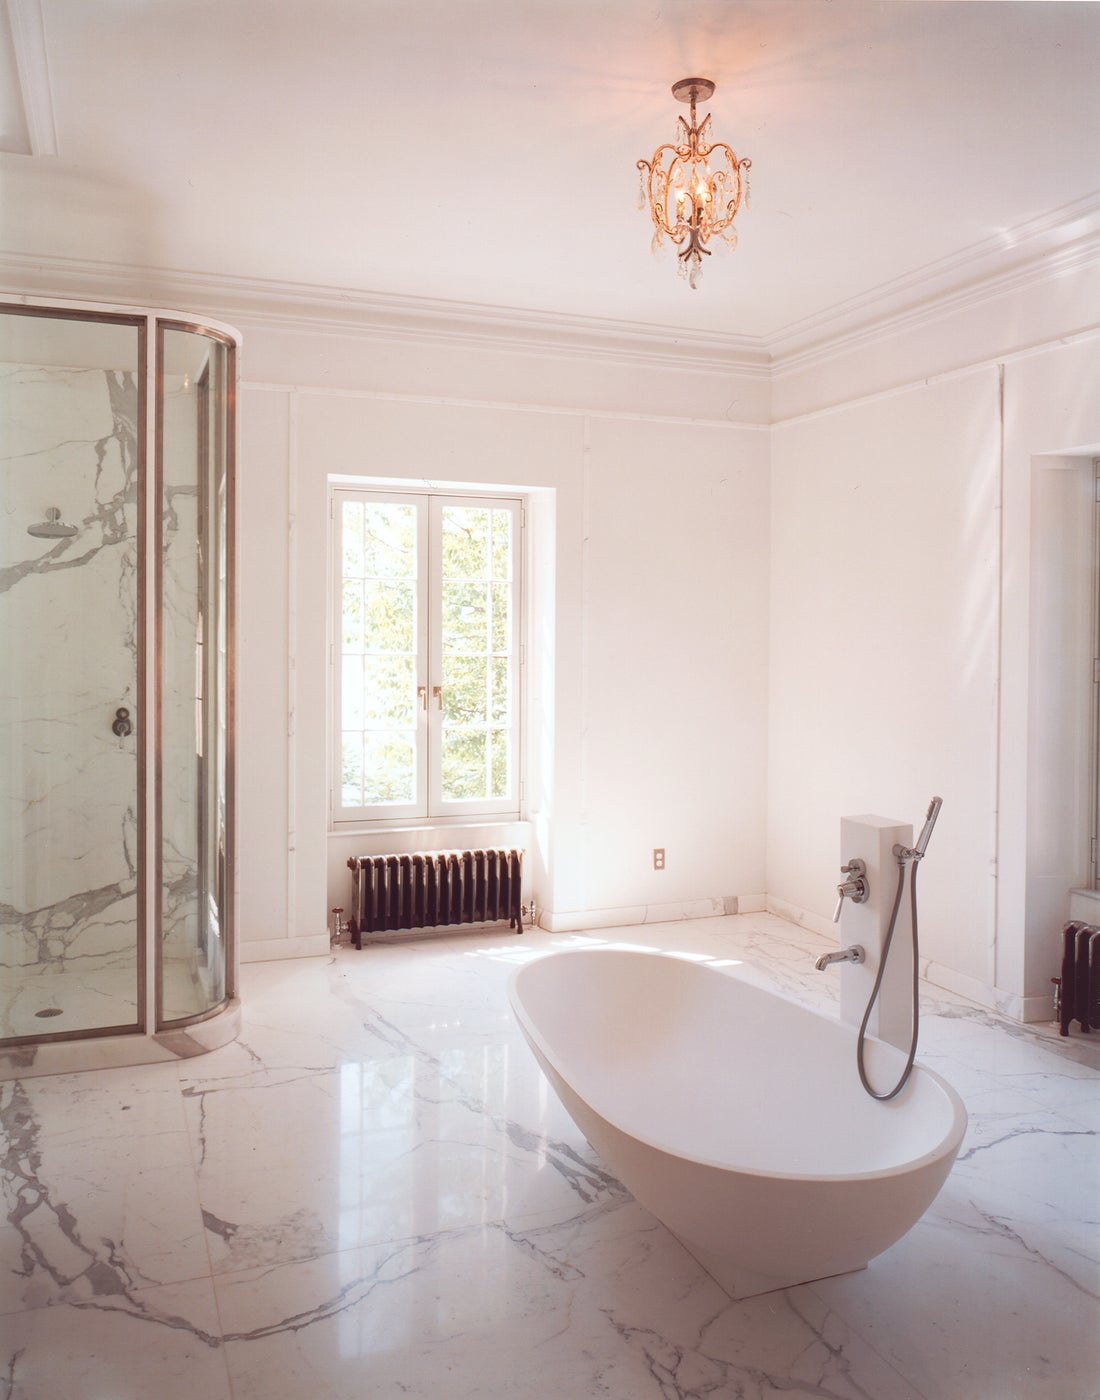 A marble bathroom in the renovation of a historic Hudson River home